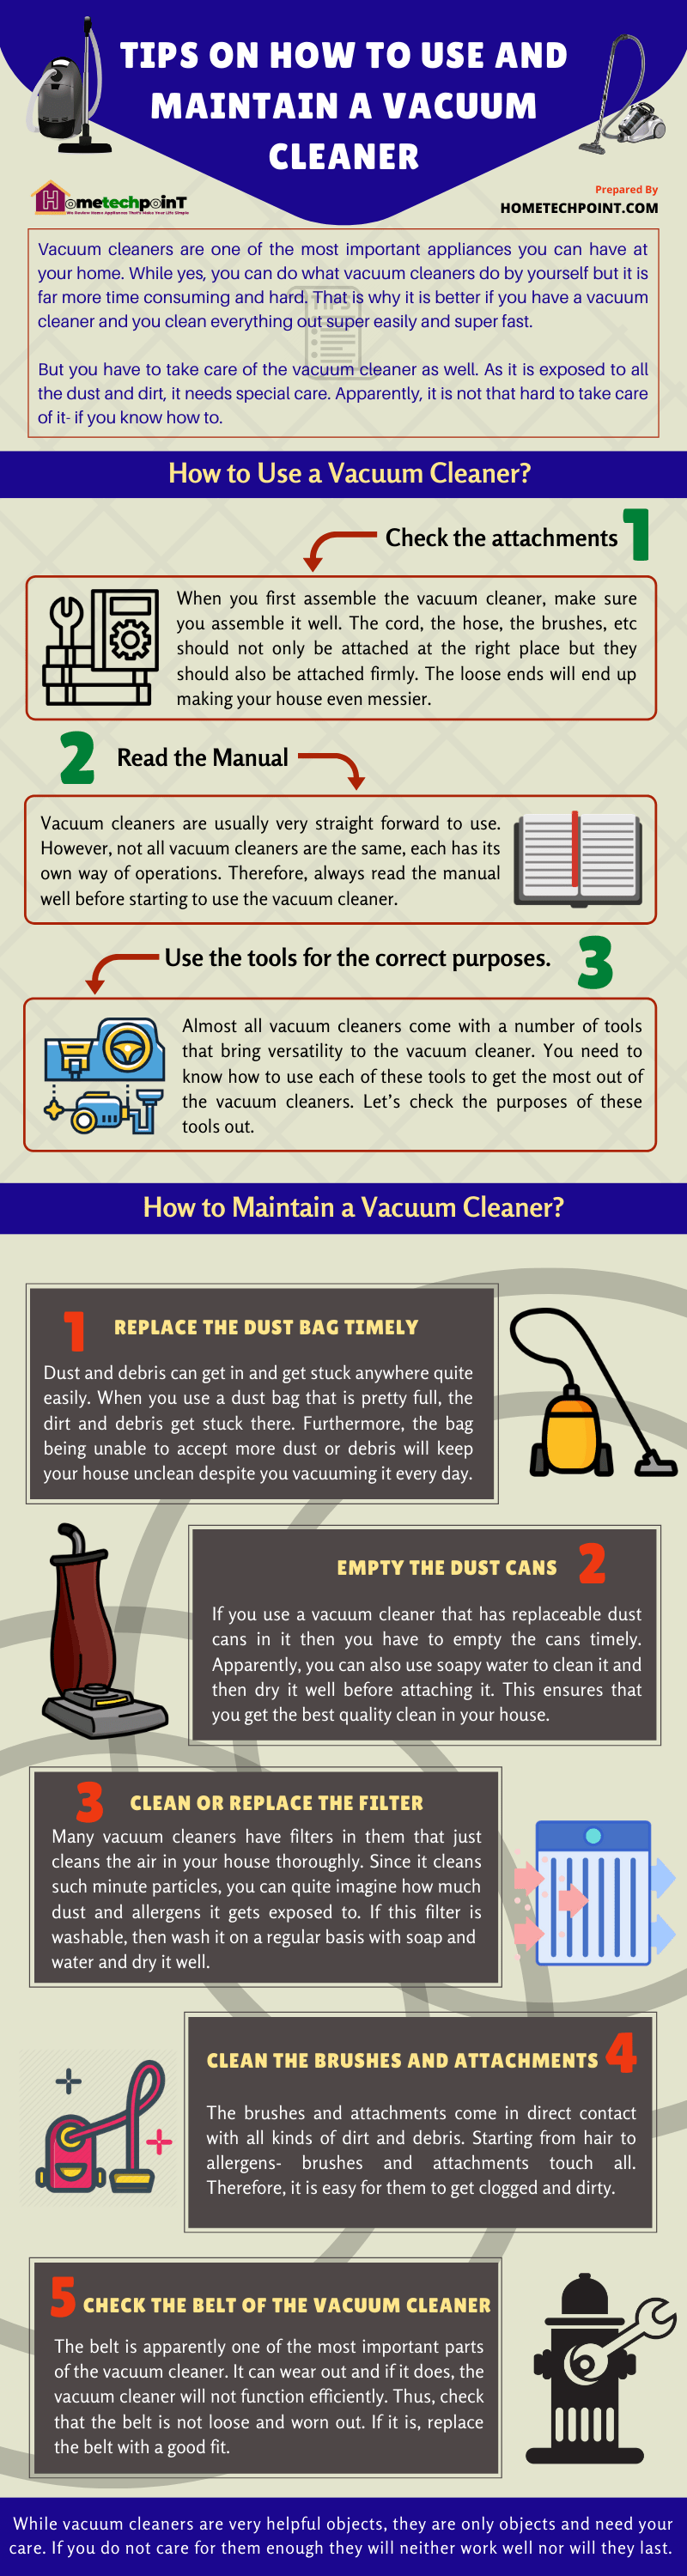 Tips on How to Use and Maintain Vacuum Cleaner